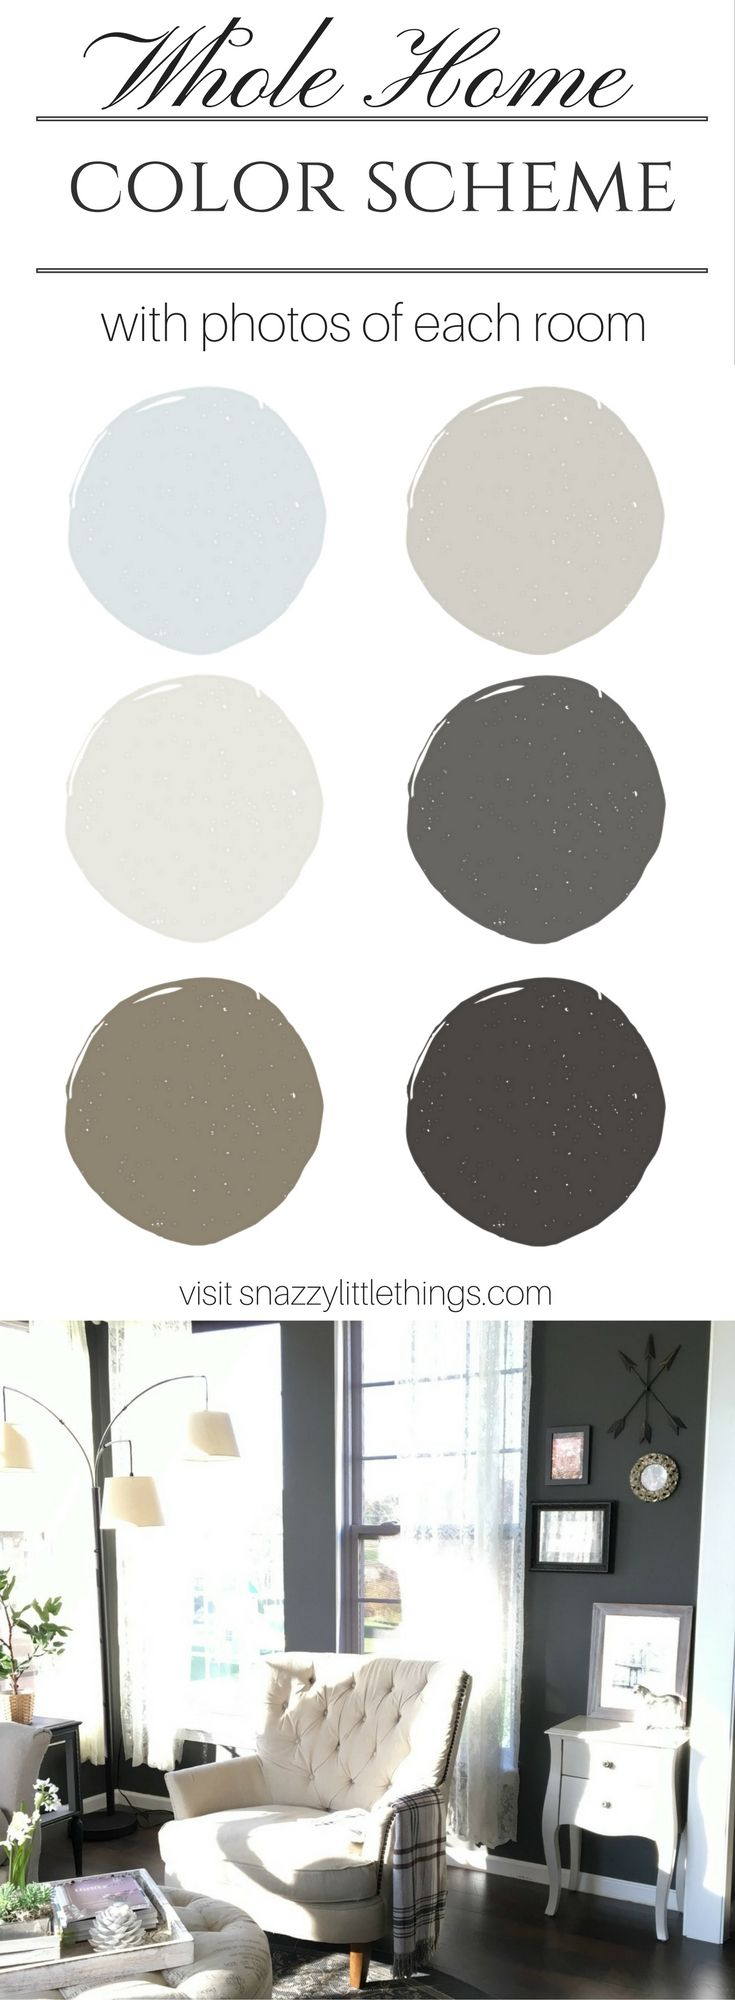 Soothing interior paint colors (with room tours) by Snazzylittlethings.com)